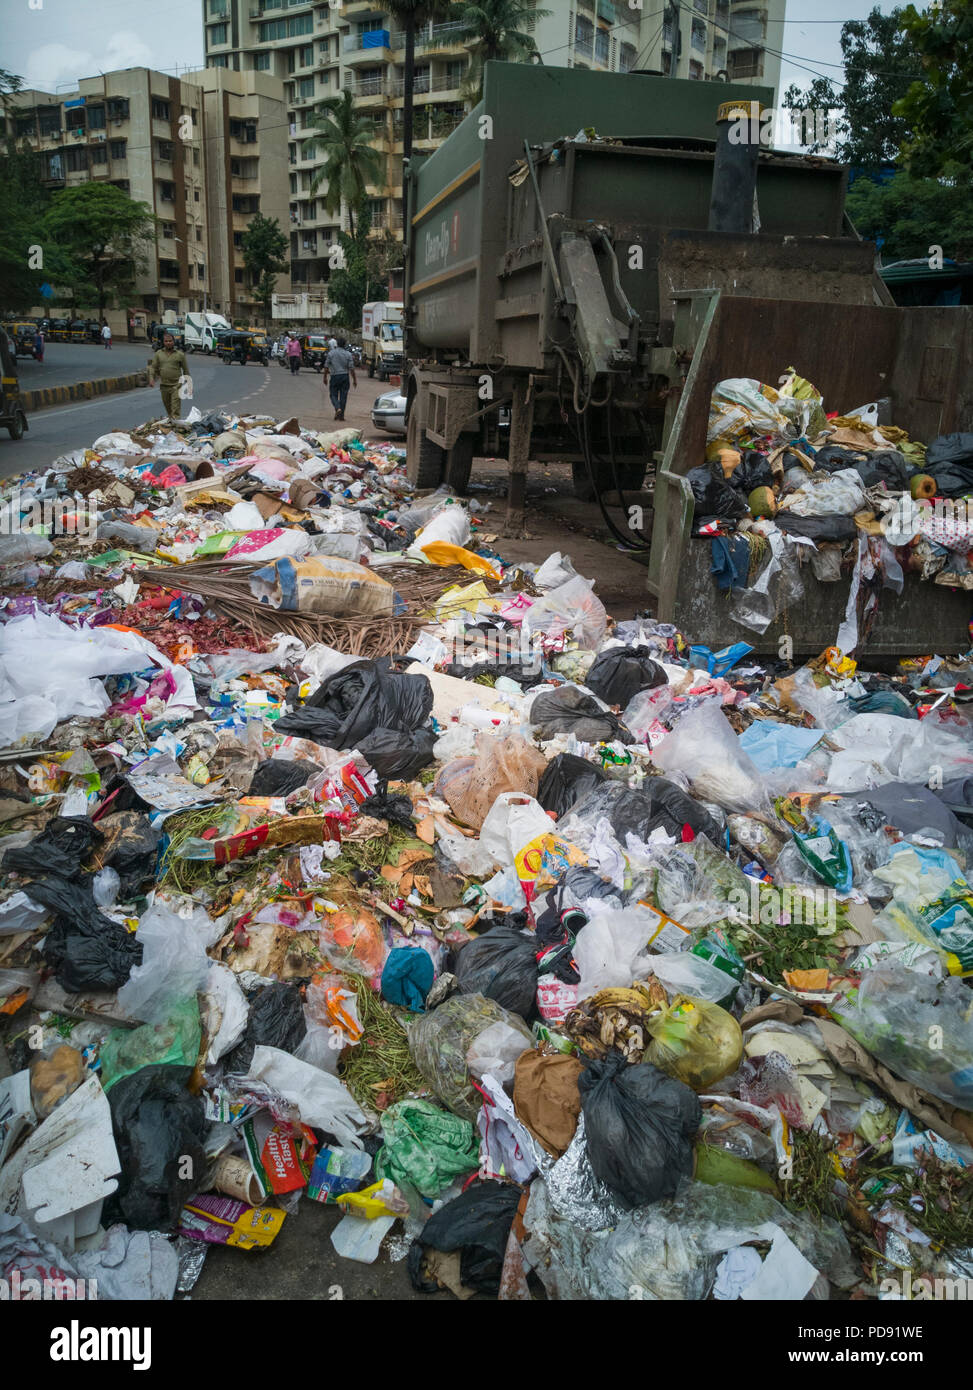 Plastic bags full of household rubbish lie on street next to dumpster in Mumbai, India Stock Photo